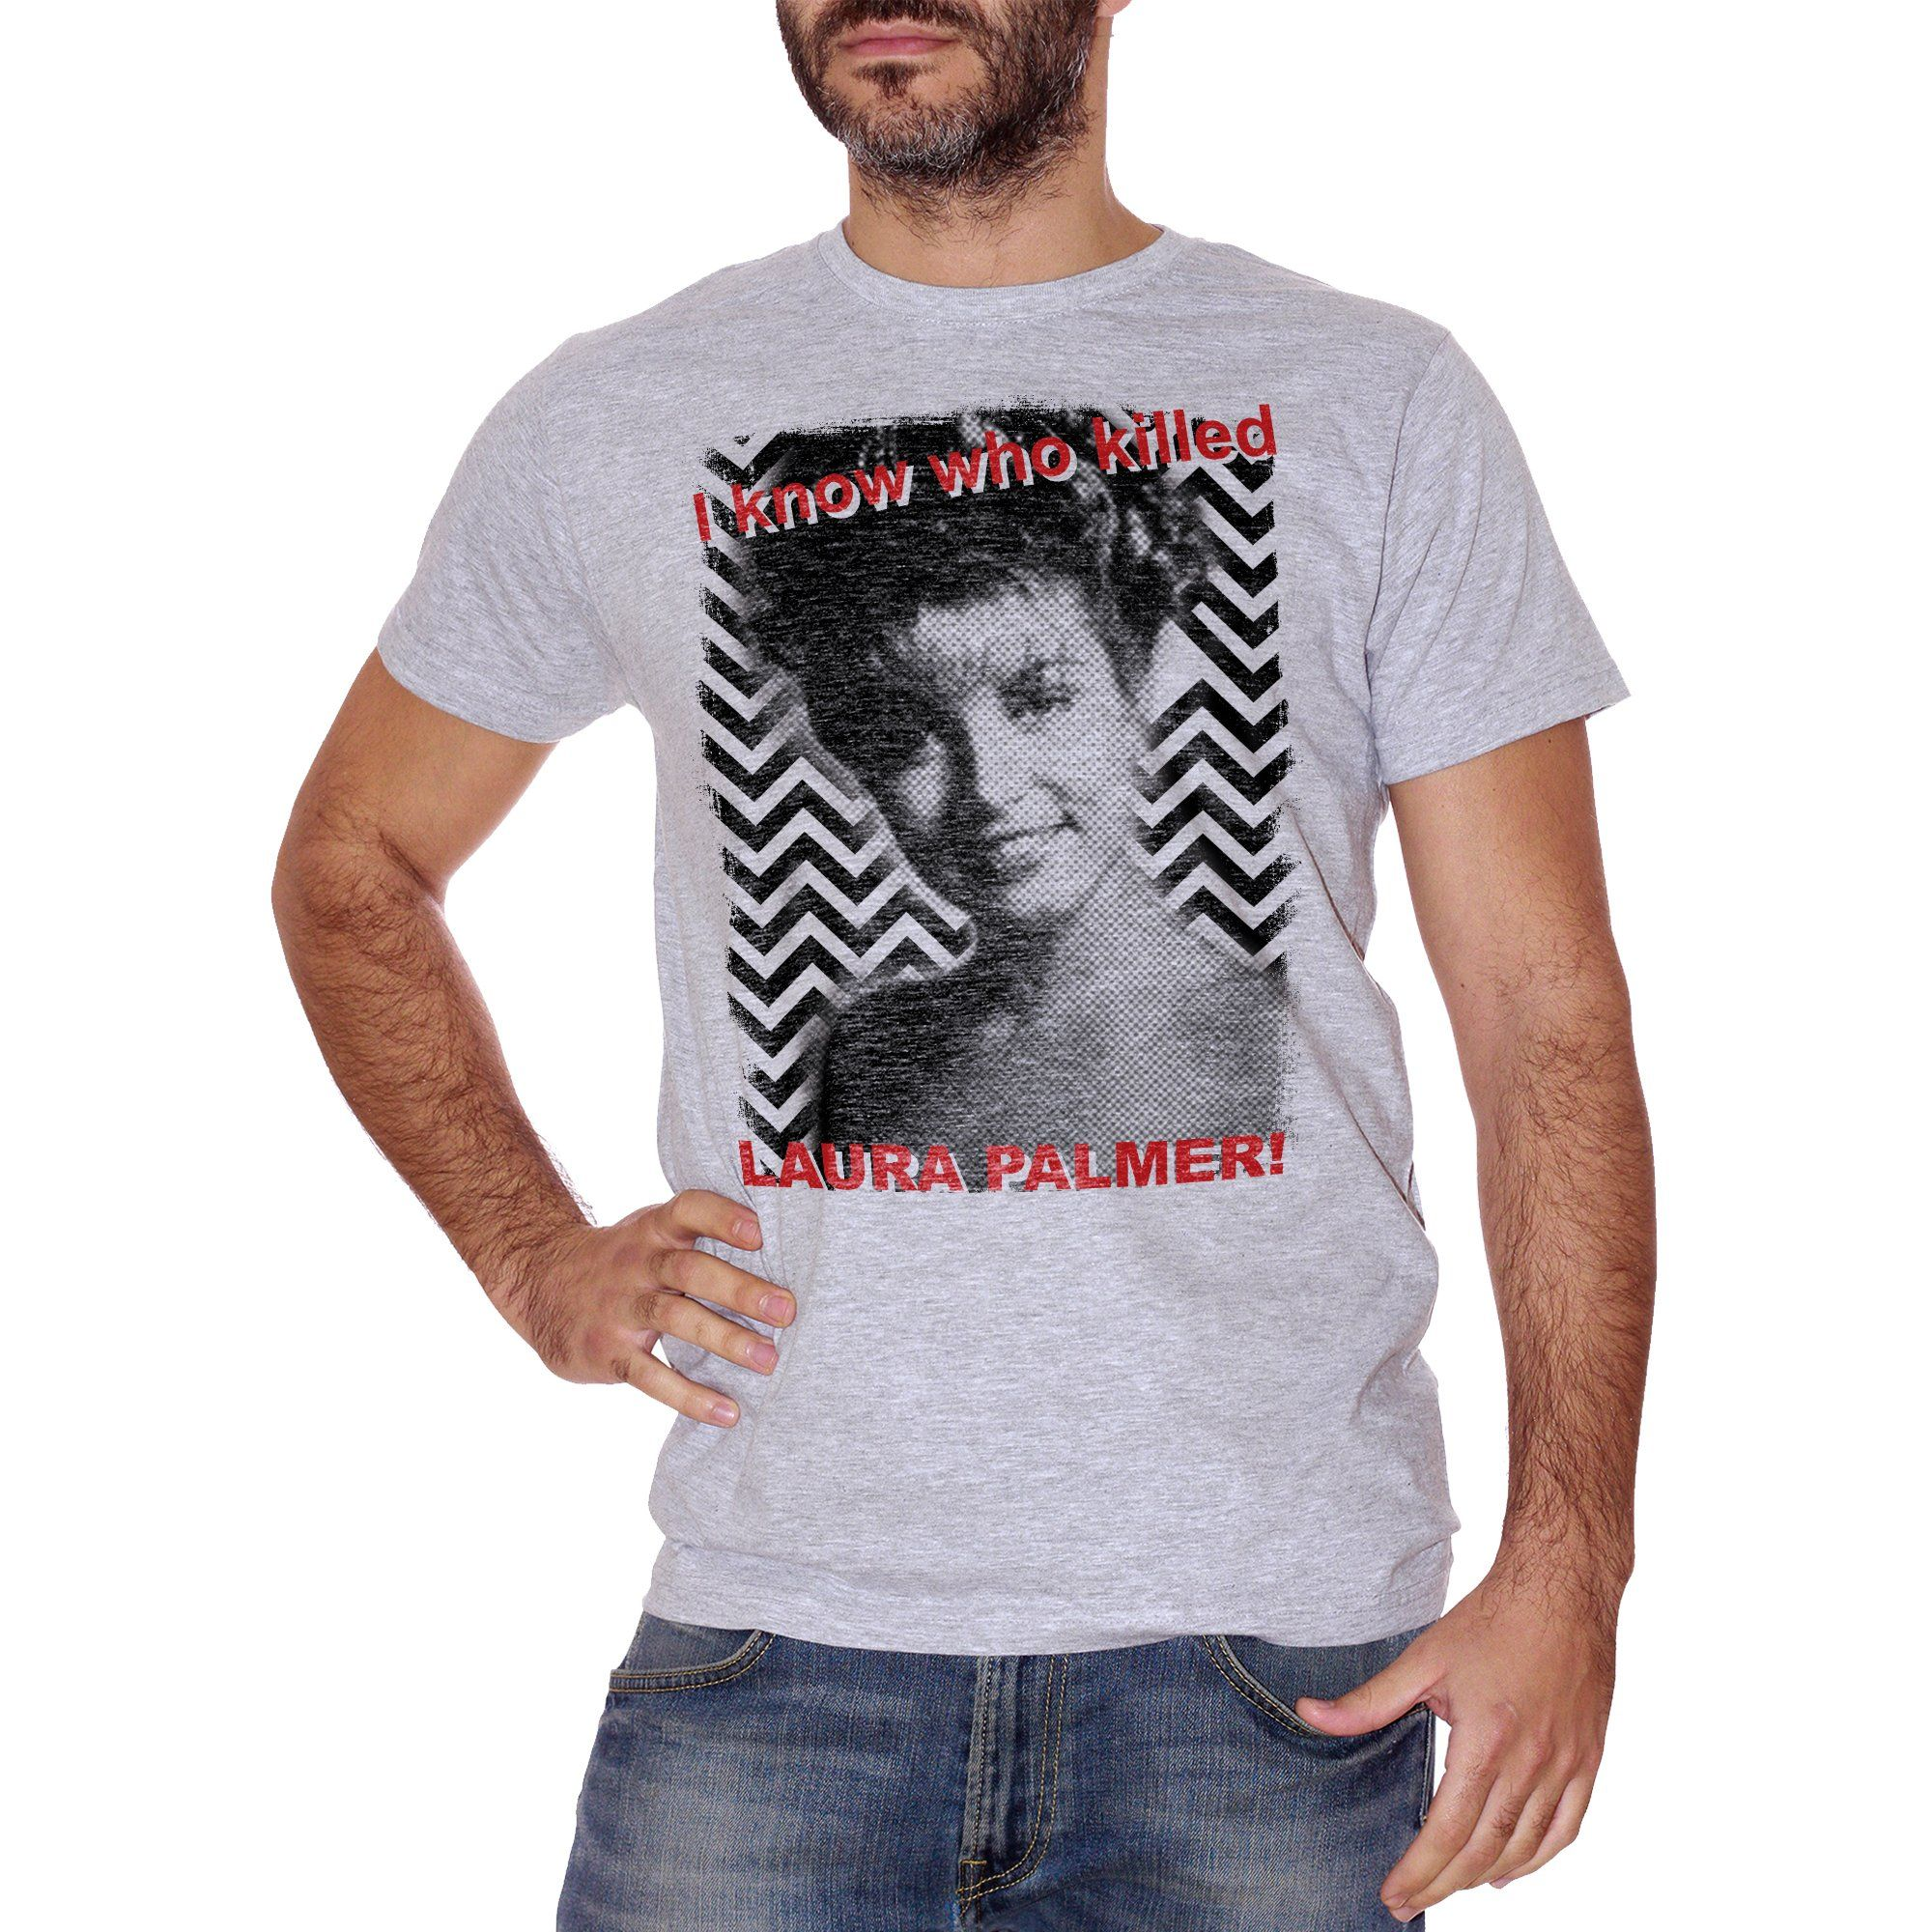 T-Shirt So Chi Ha Ucciso Laura Palmer - Twin Peaks - FILM Choose ur color - CUC #chooseurcolor